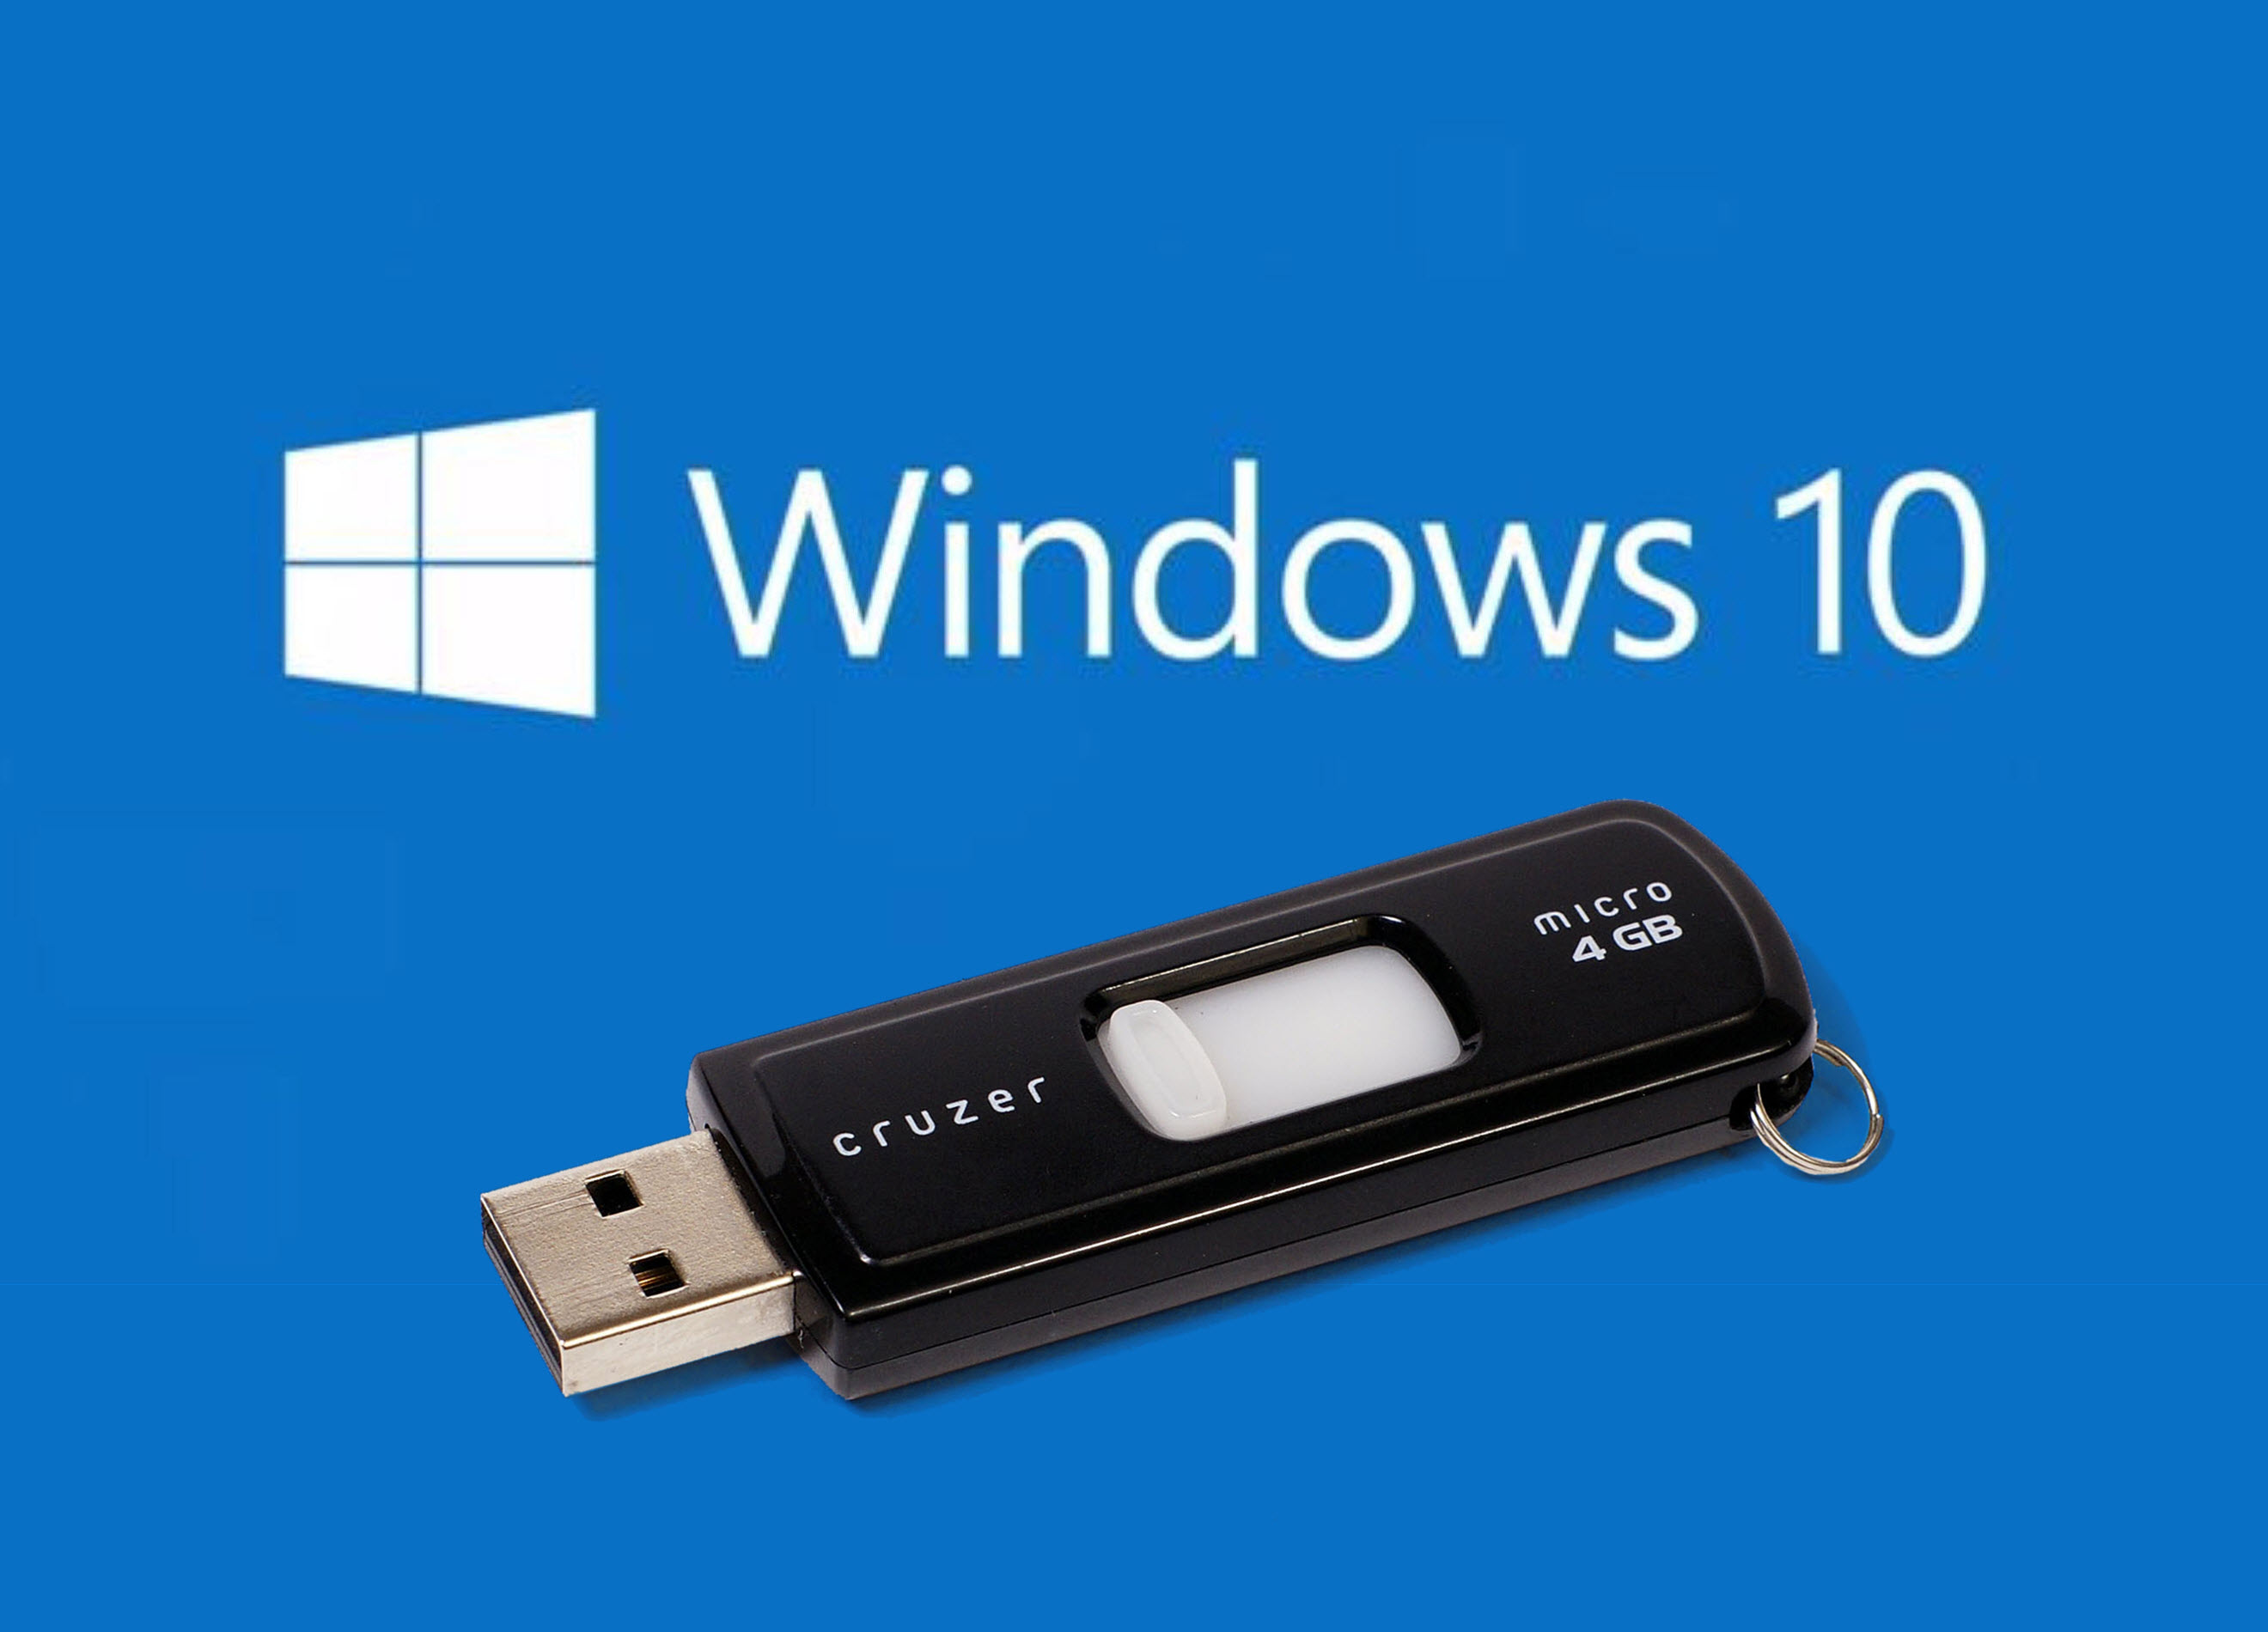 3 Easy Ways To Create UEFI or Legacy Bootable USB Windows 10